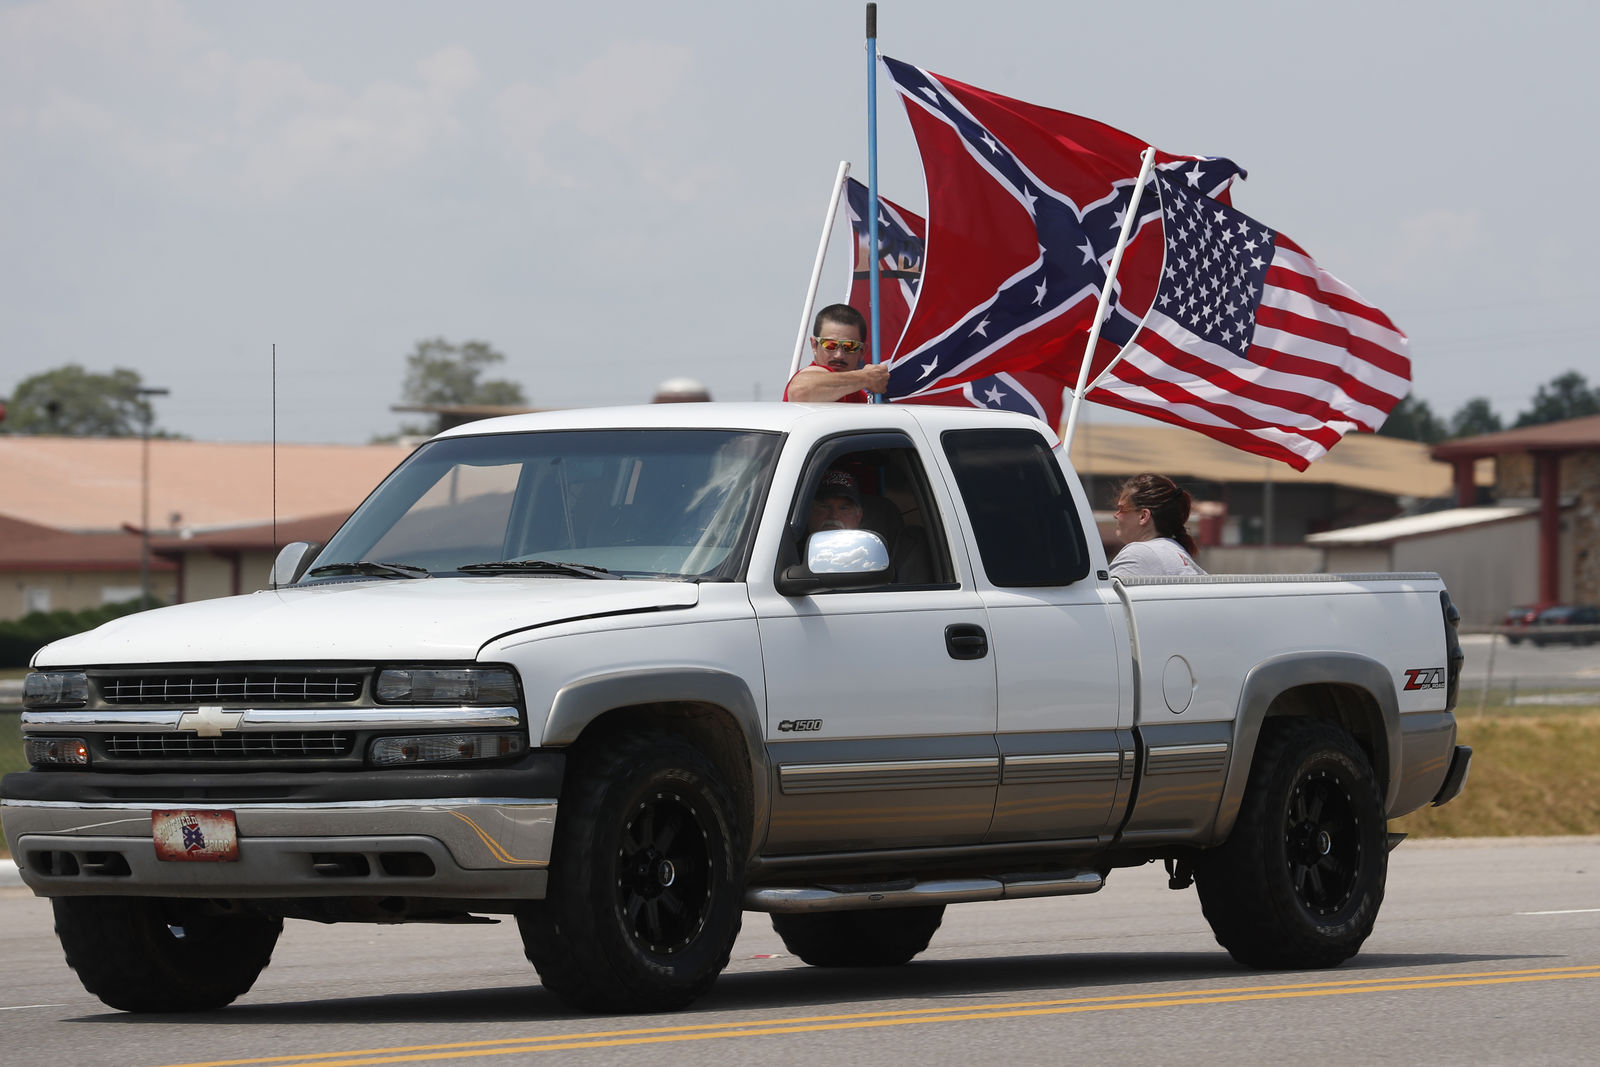 FILE - In this  June 21, 2020, file photo, race fans fly Confederate battle flags and a United States flag as they drive by Talladega Superspeedway prior to a NASCAR Cup Series auto race in Talladega, Ala. (AP Photo/John Bazemore, File)